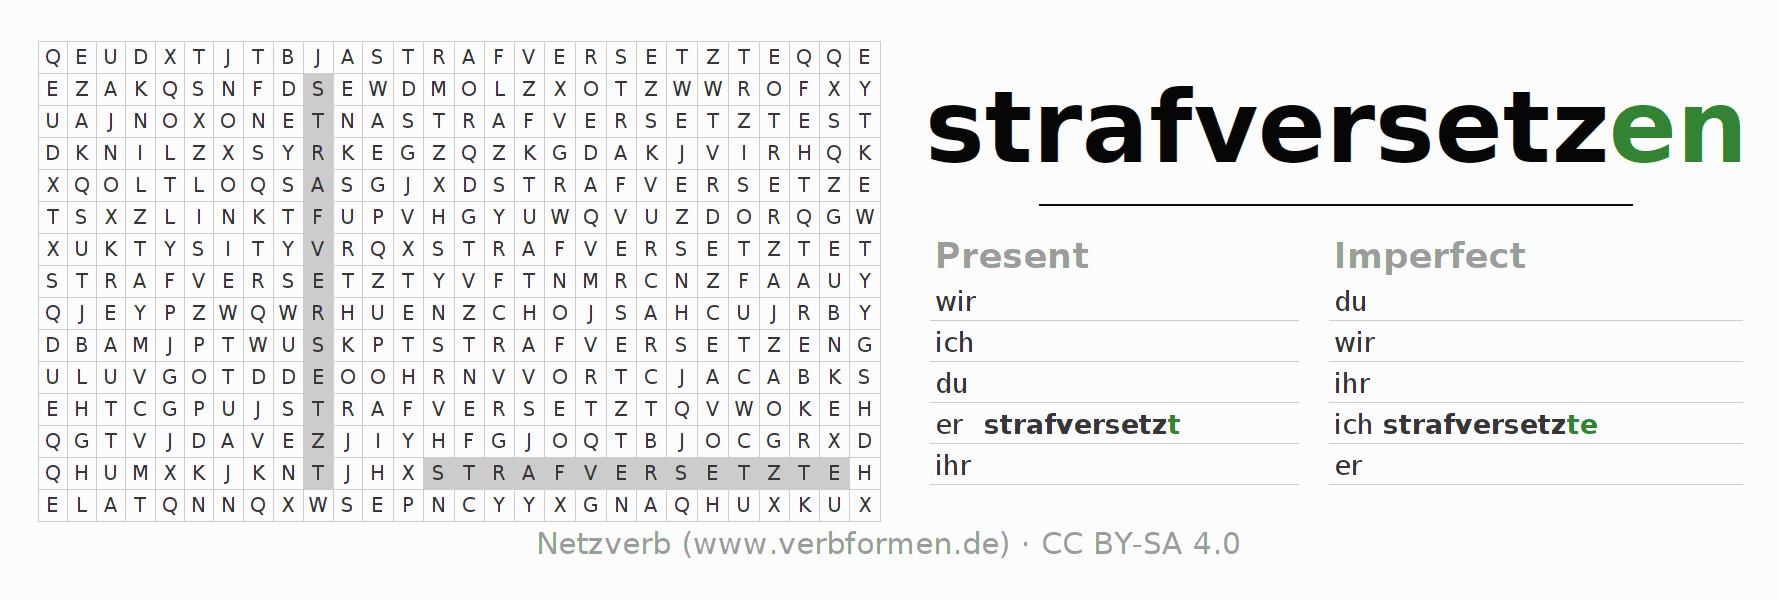 Word search puzzle for the conjugation of the verb strafversetzen